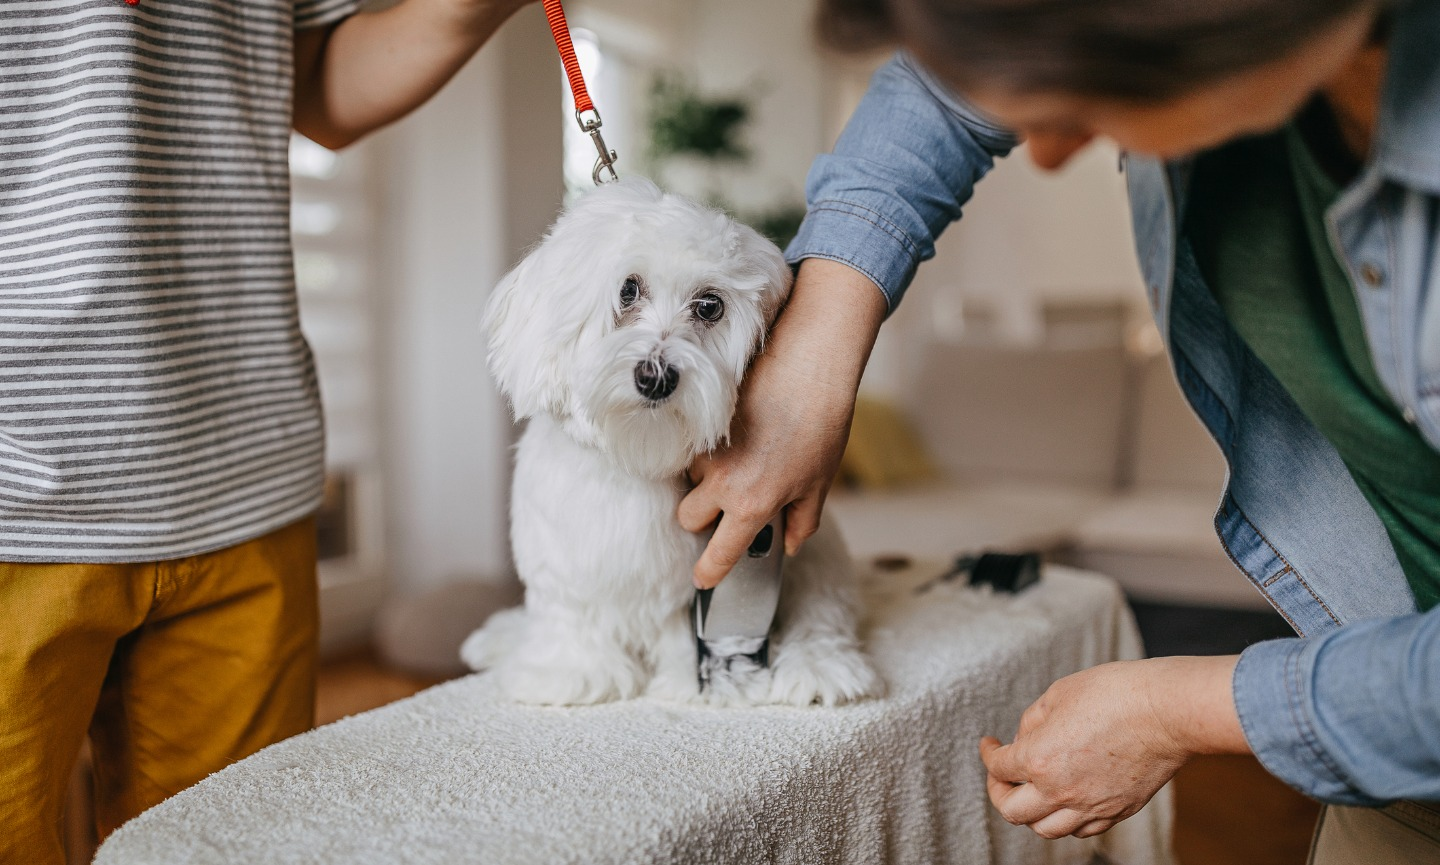 grooming a dog with clippers